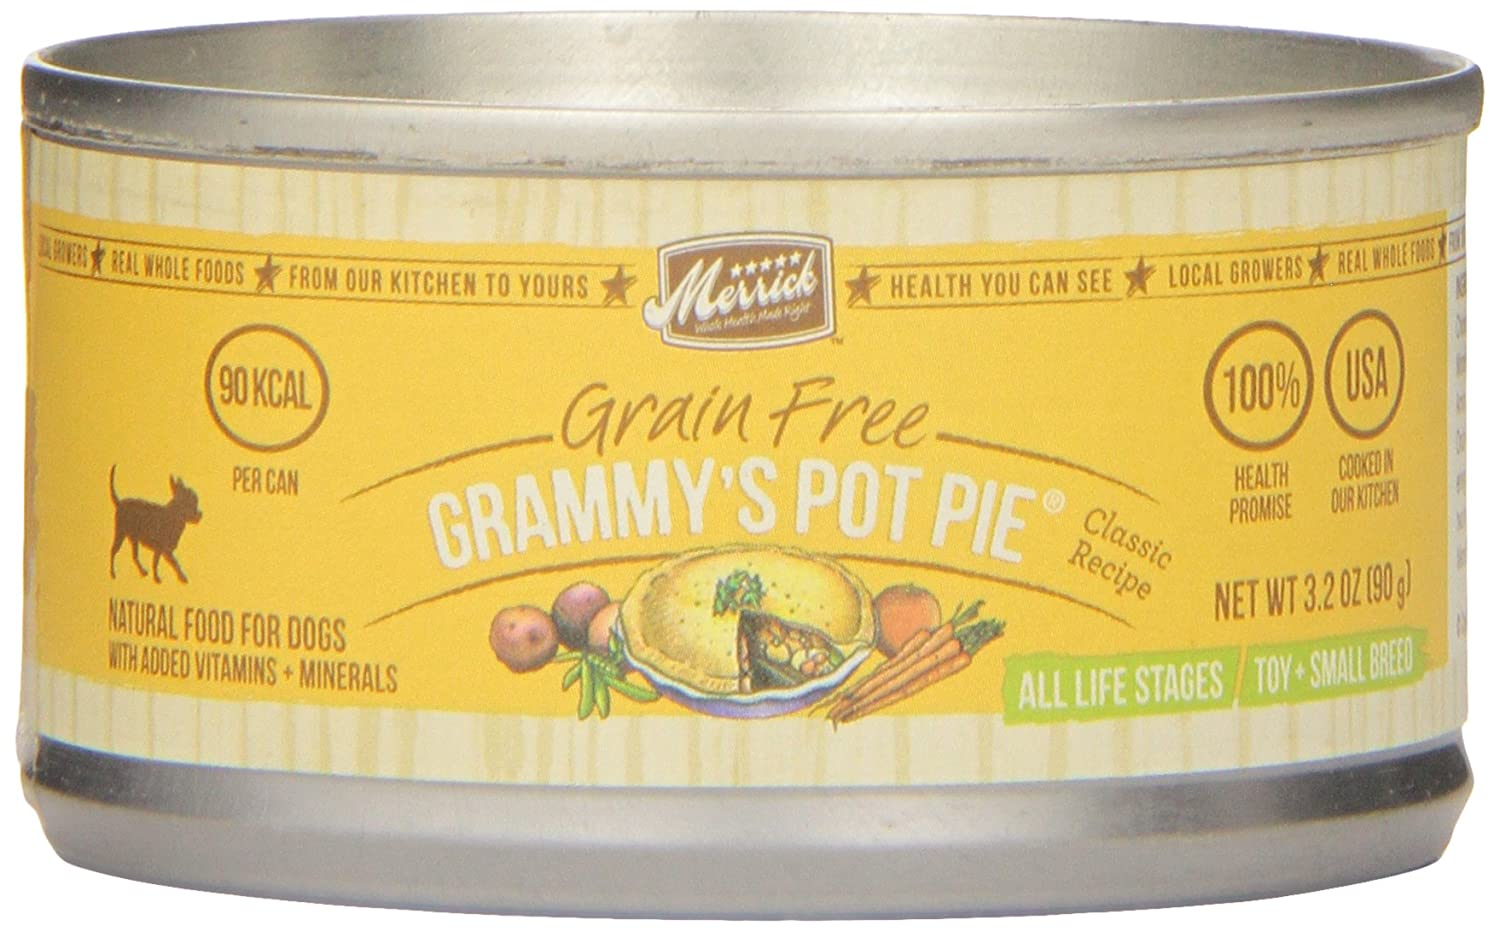 Classic Small Breed Grammy's Pot Pie Canned Dog Food (3.2-oz, case of 24)